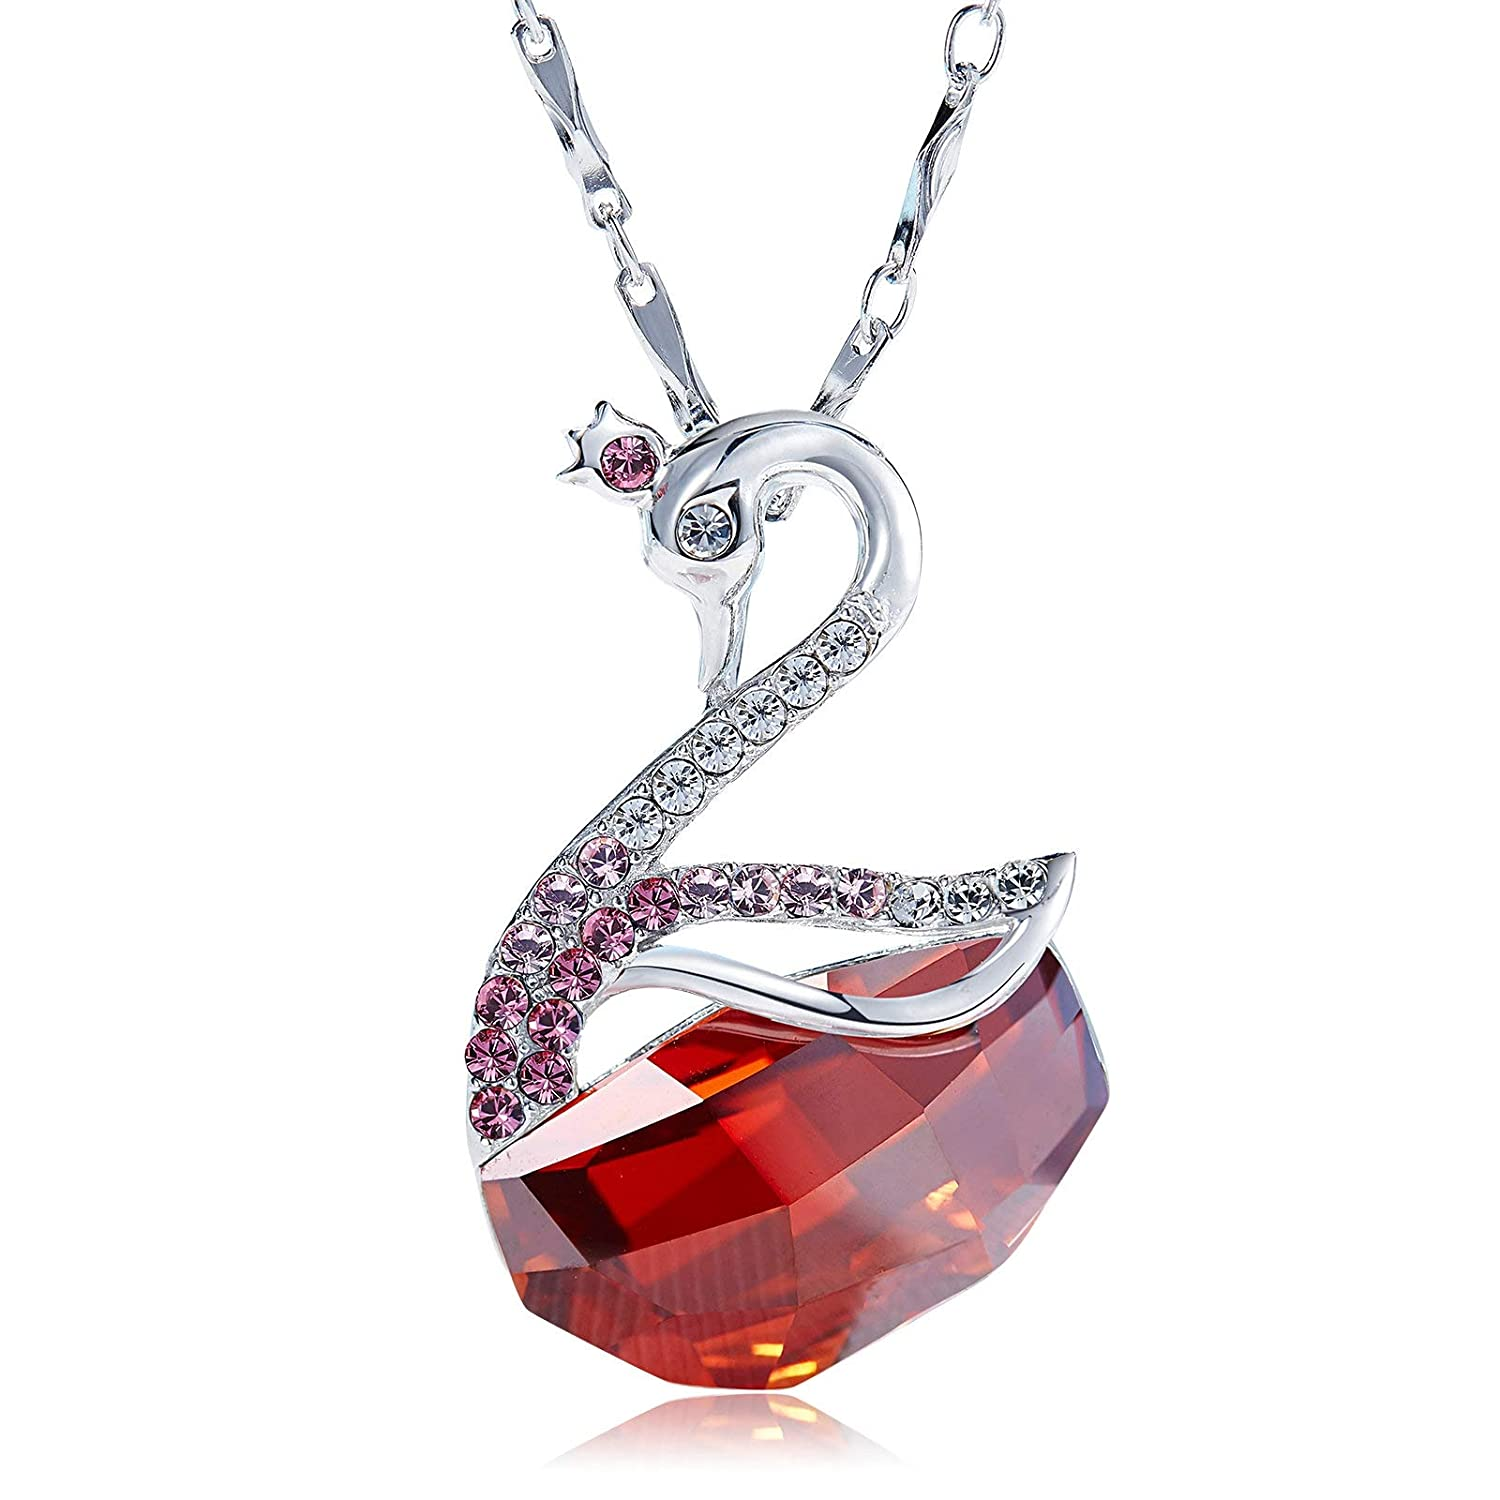 Top Crystal Pendant S925 Sterling Silver Animal Style CZ Necklace